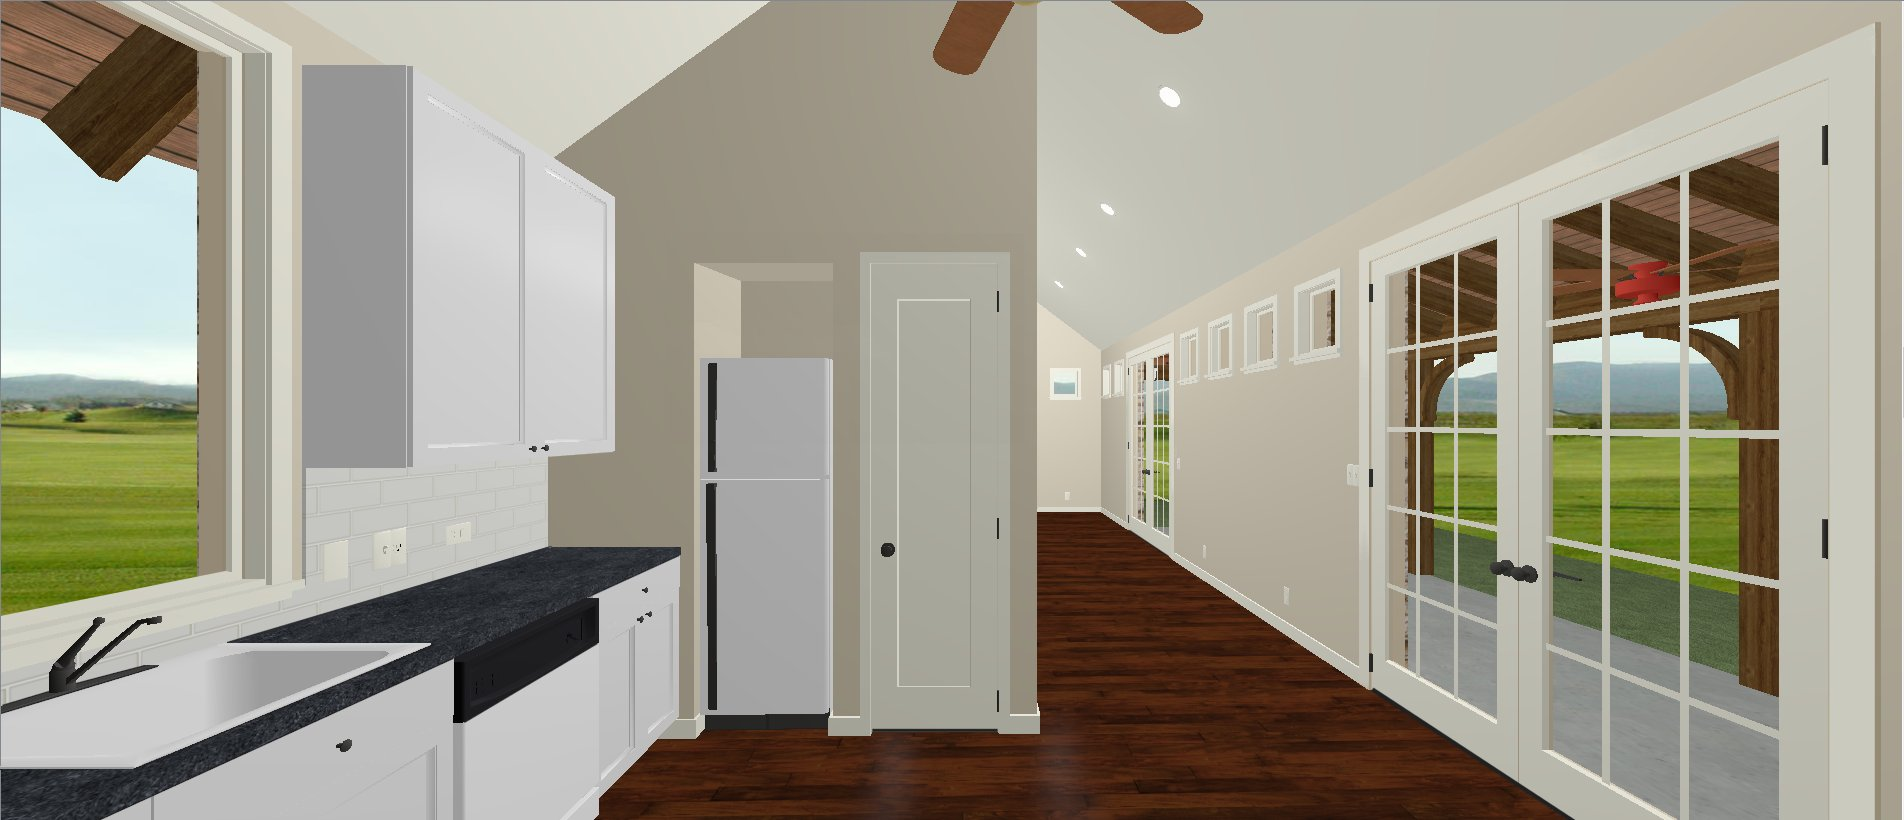 Peachy Texas Tiny Homes Designs Builds And Markets House Plans Largest Home Design Picture Inspirations Pitcheantrous